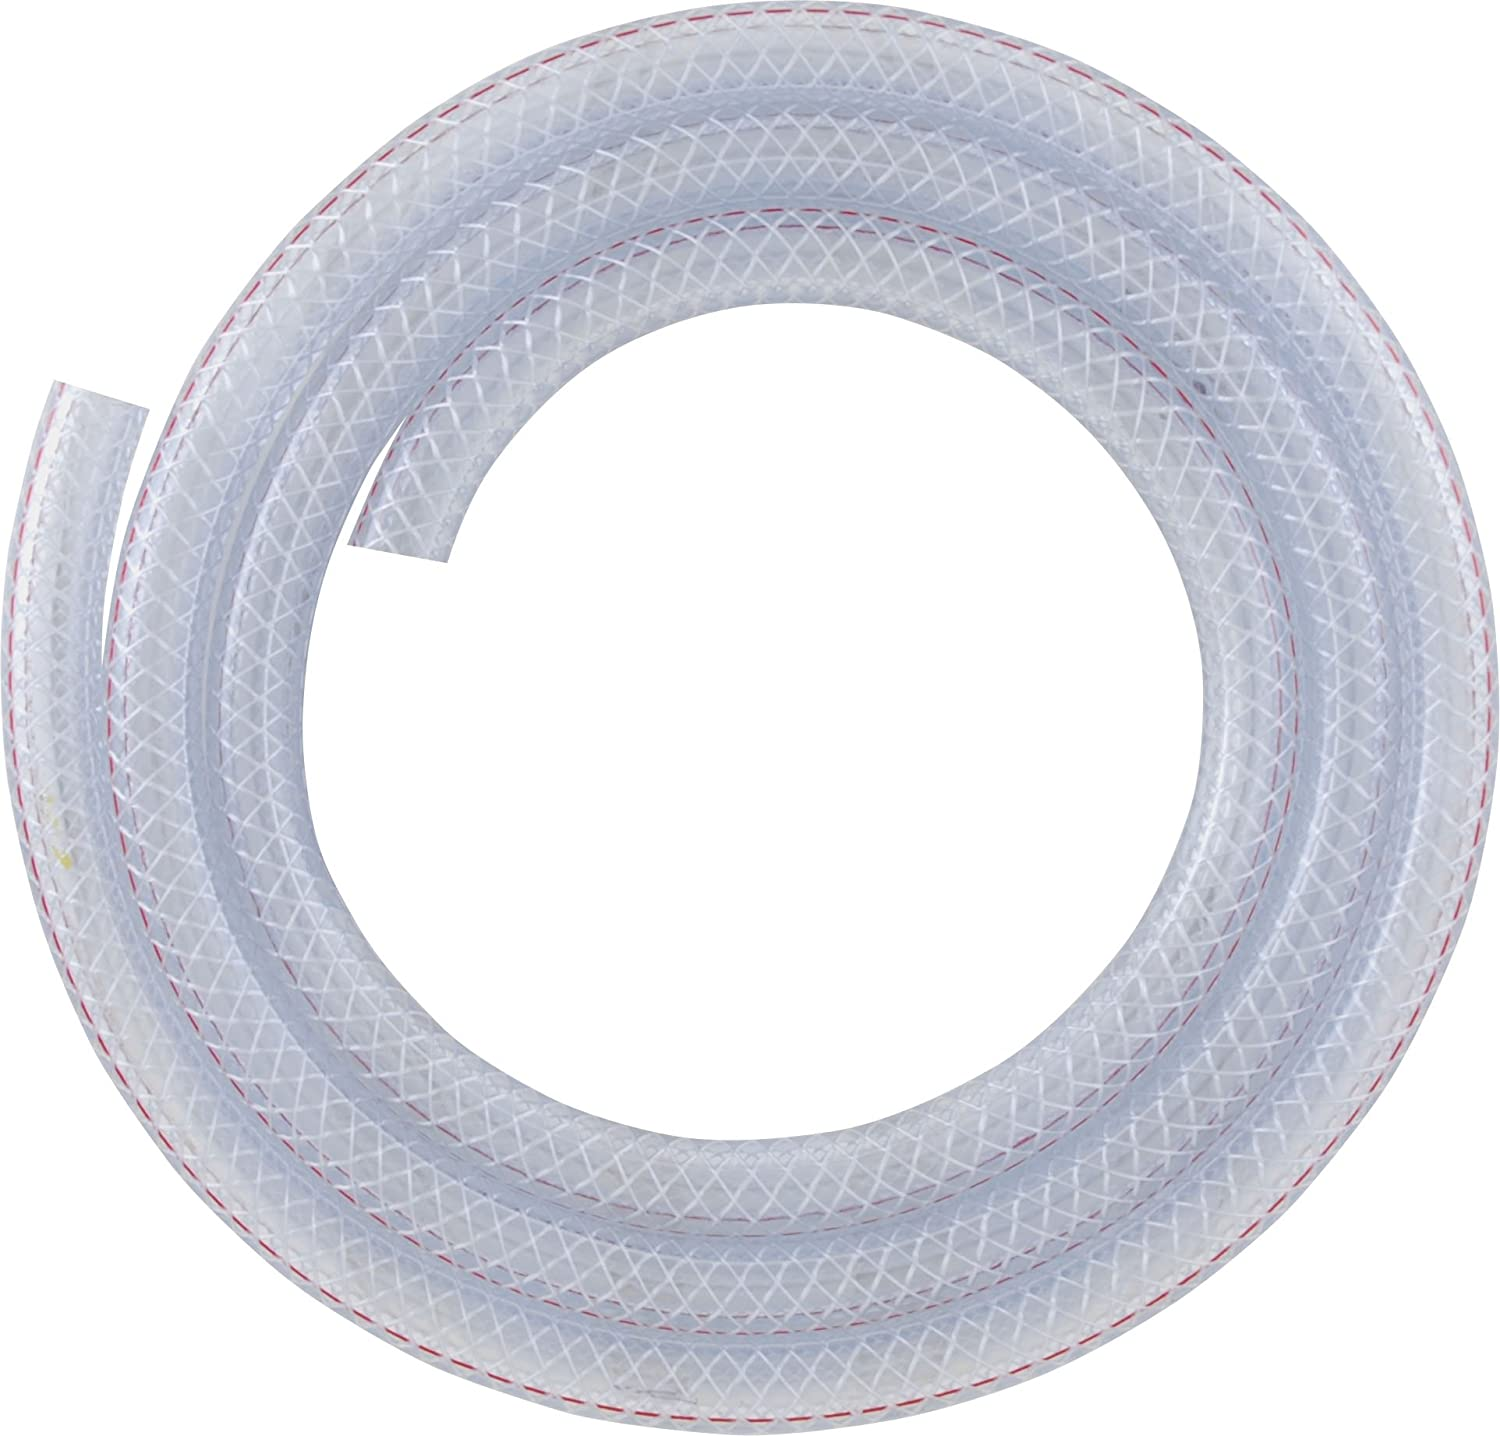 LDR Industries 516 B3810 Reinforced Clear Braided PVC Vinyl Tubing, Flexible Hose, Heavy Duty Hose, 3/8